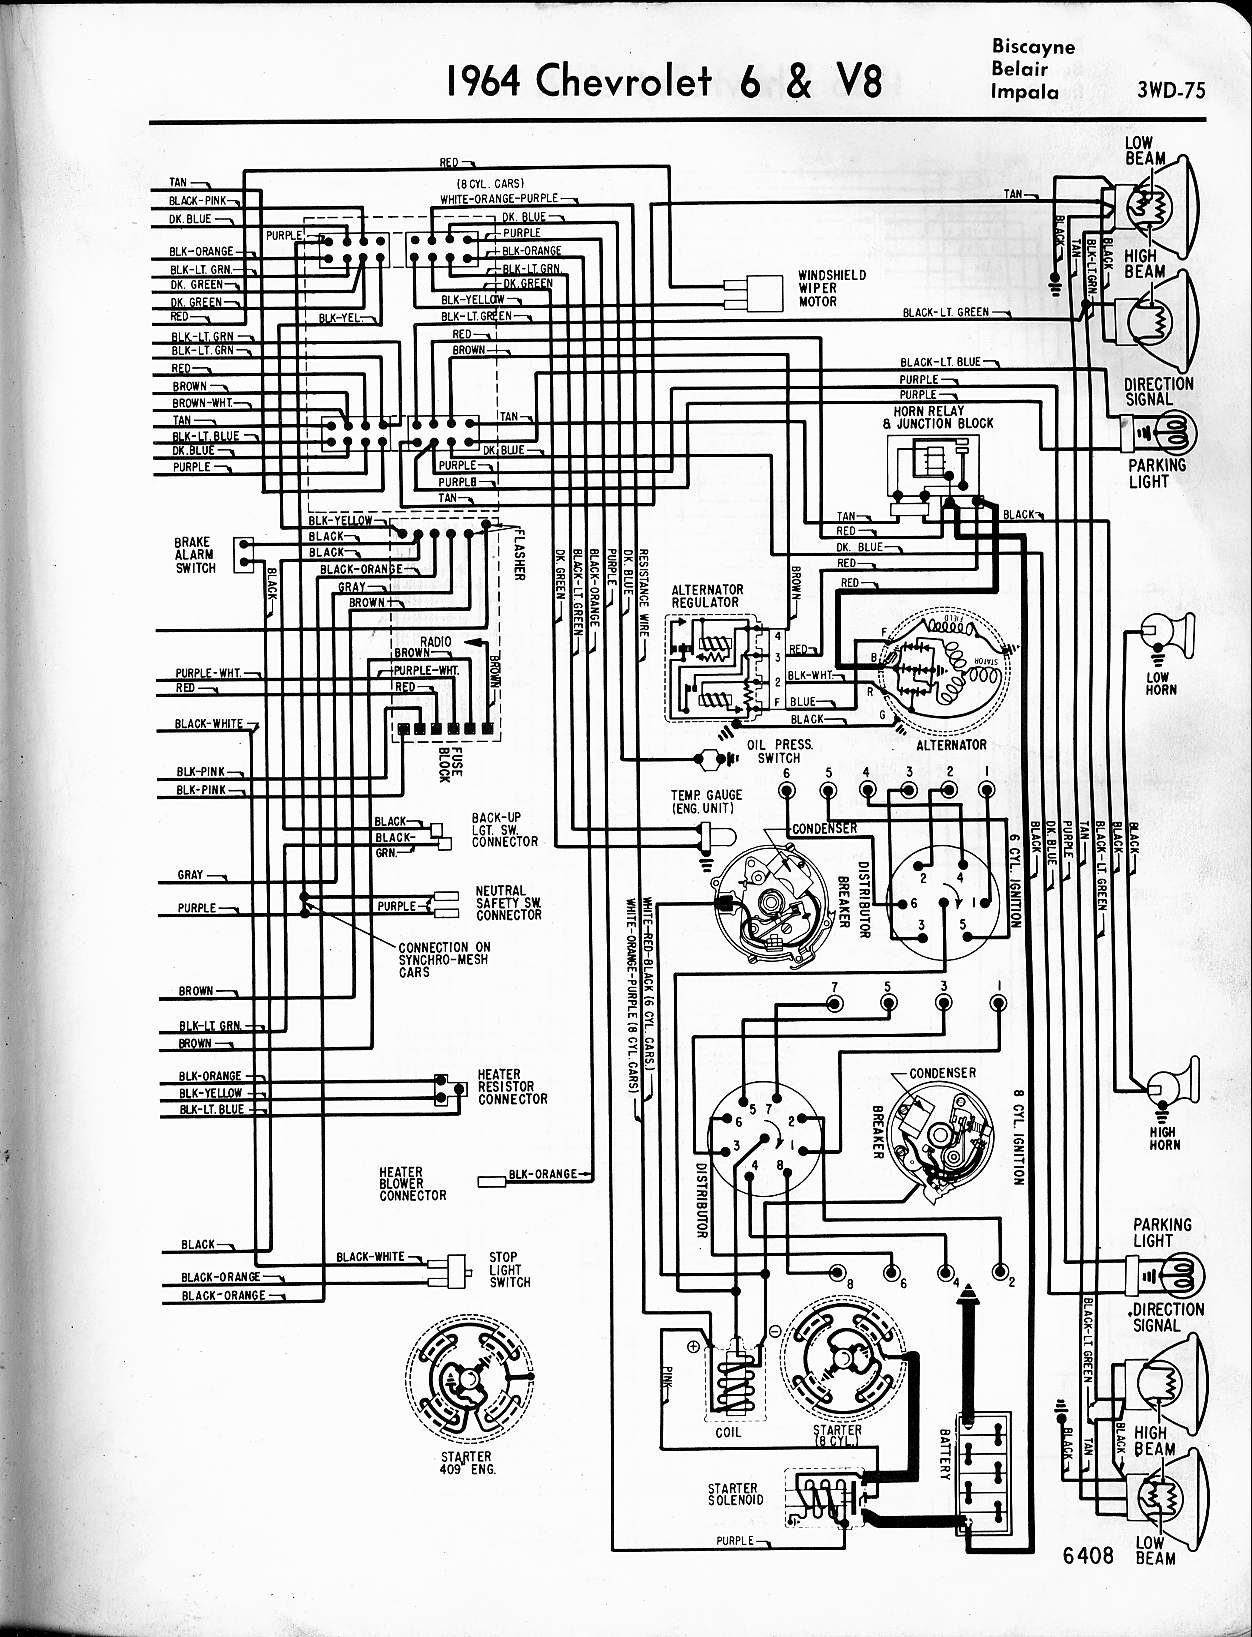 hight resolution of 64 cj5 wiring diagram wiring diagram show 64 cj5 wiring diagram